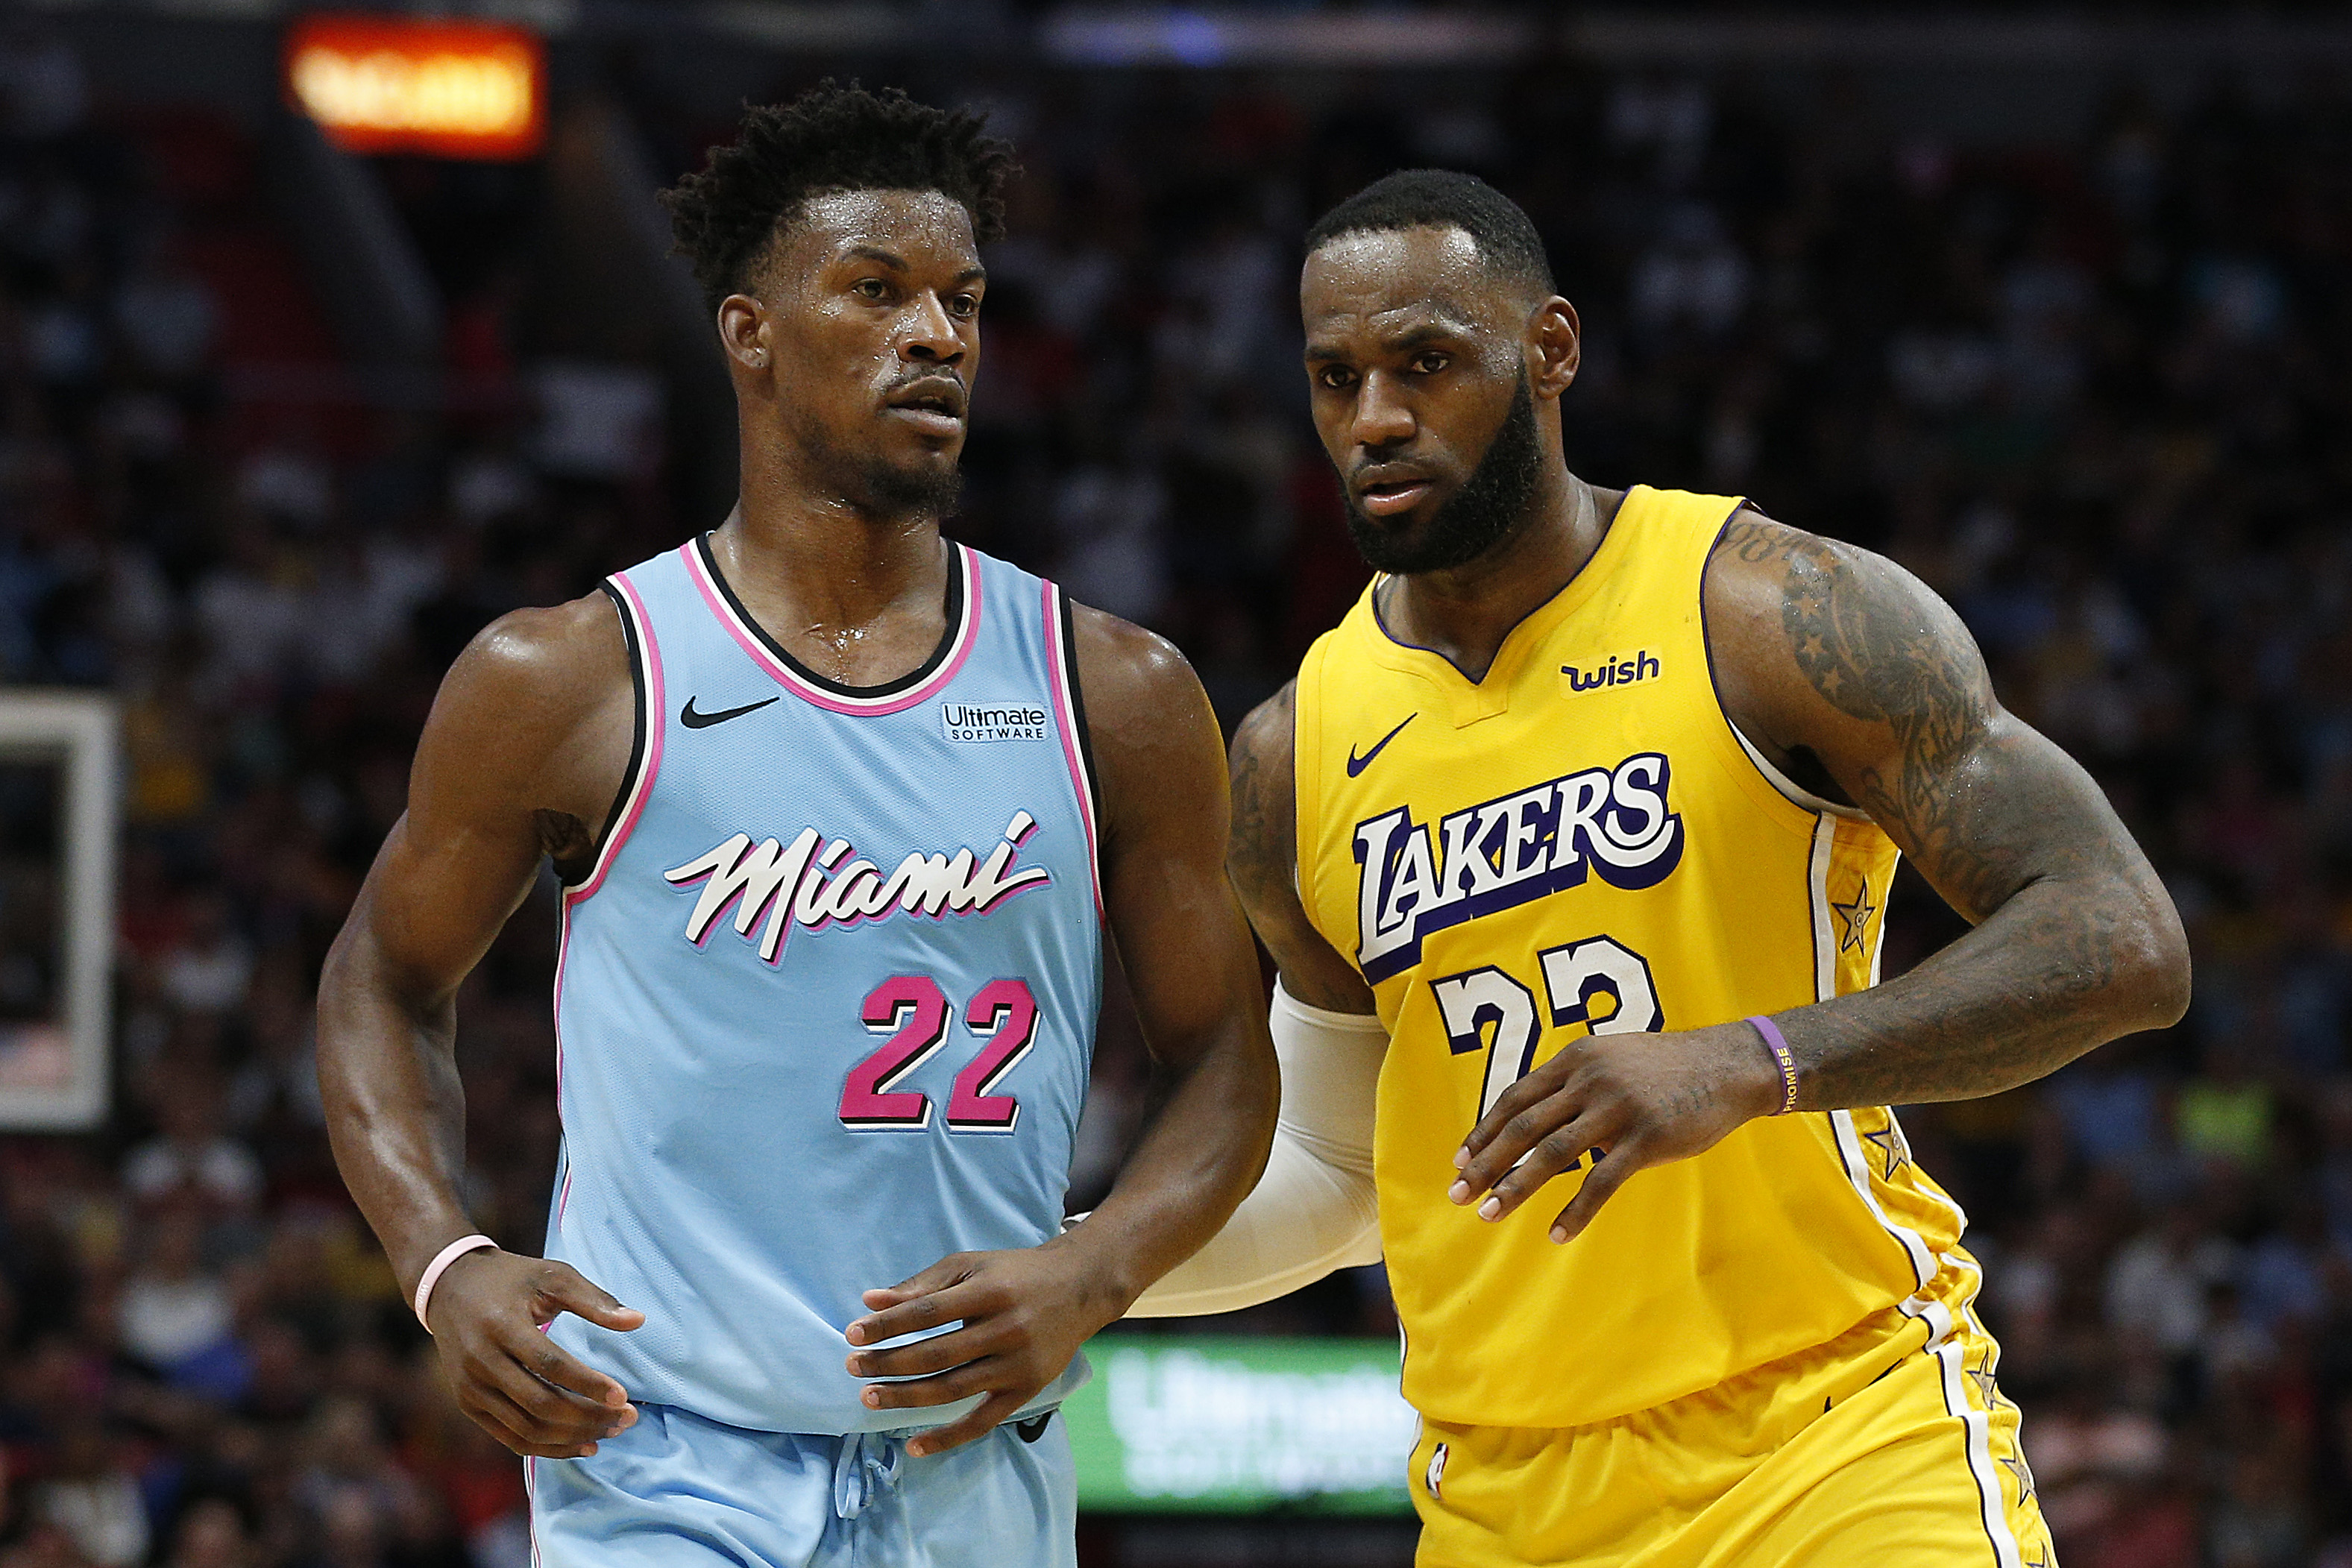 Los Angeles Lakers vs Miami Heat NBA Odds and Predictions